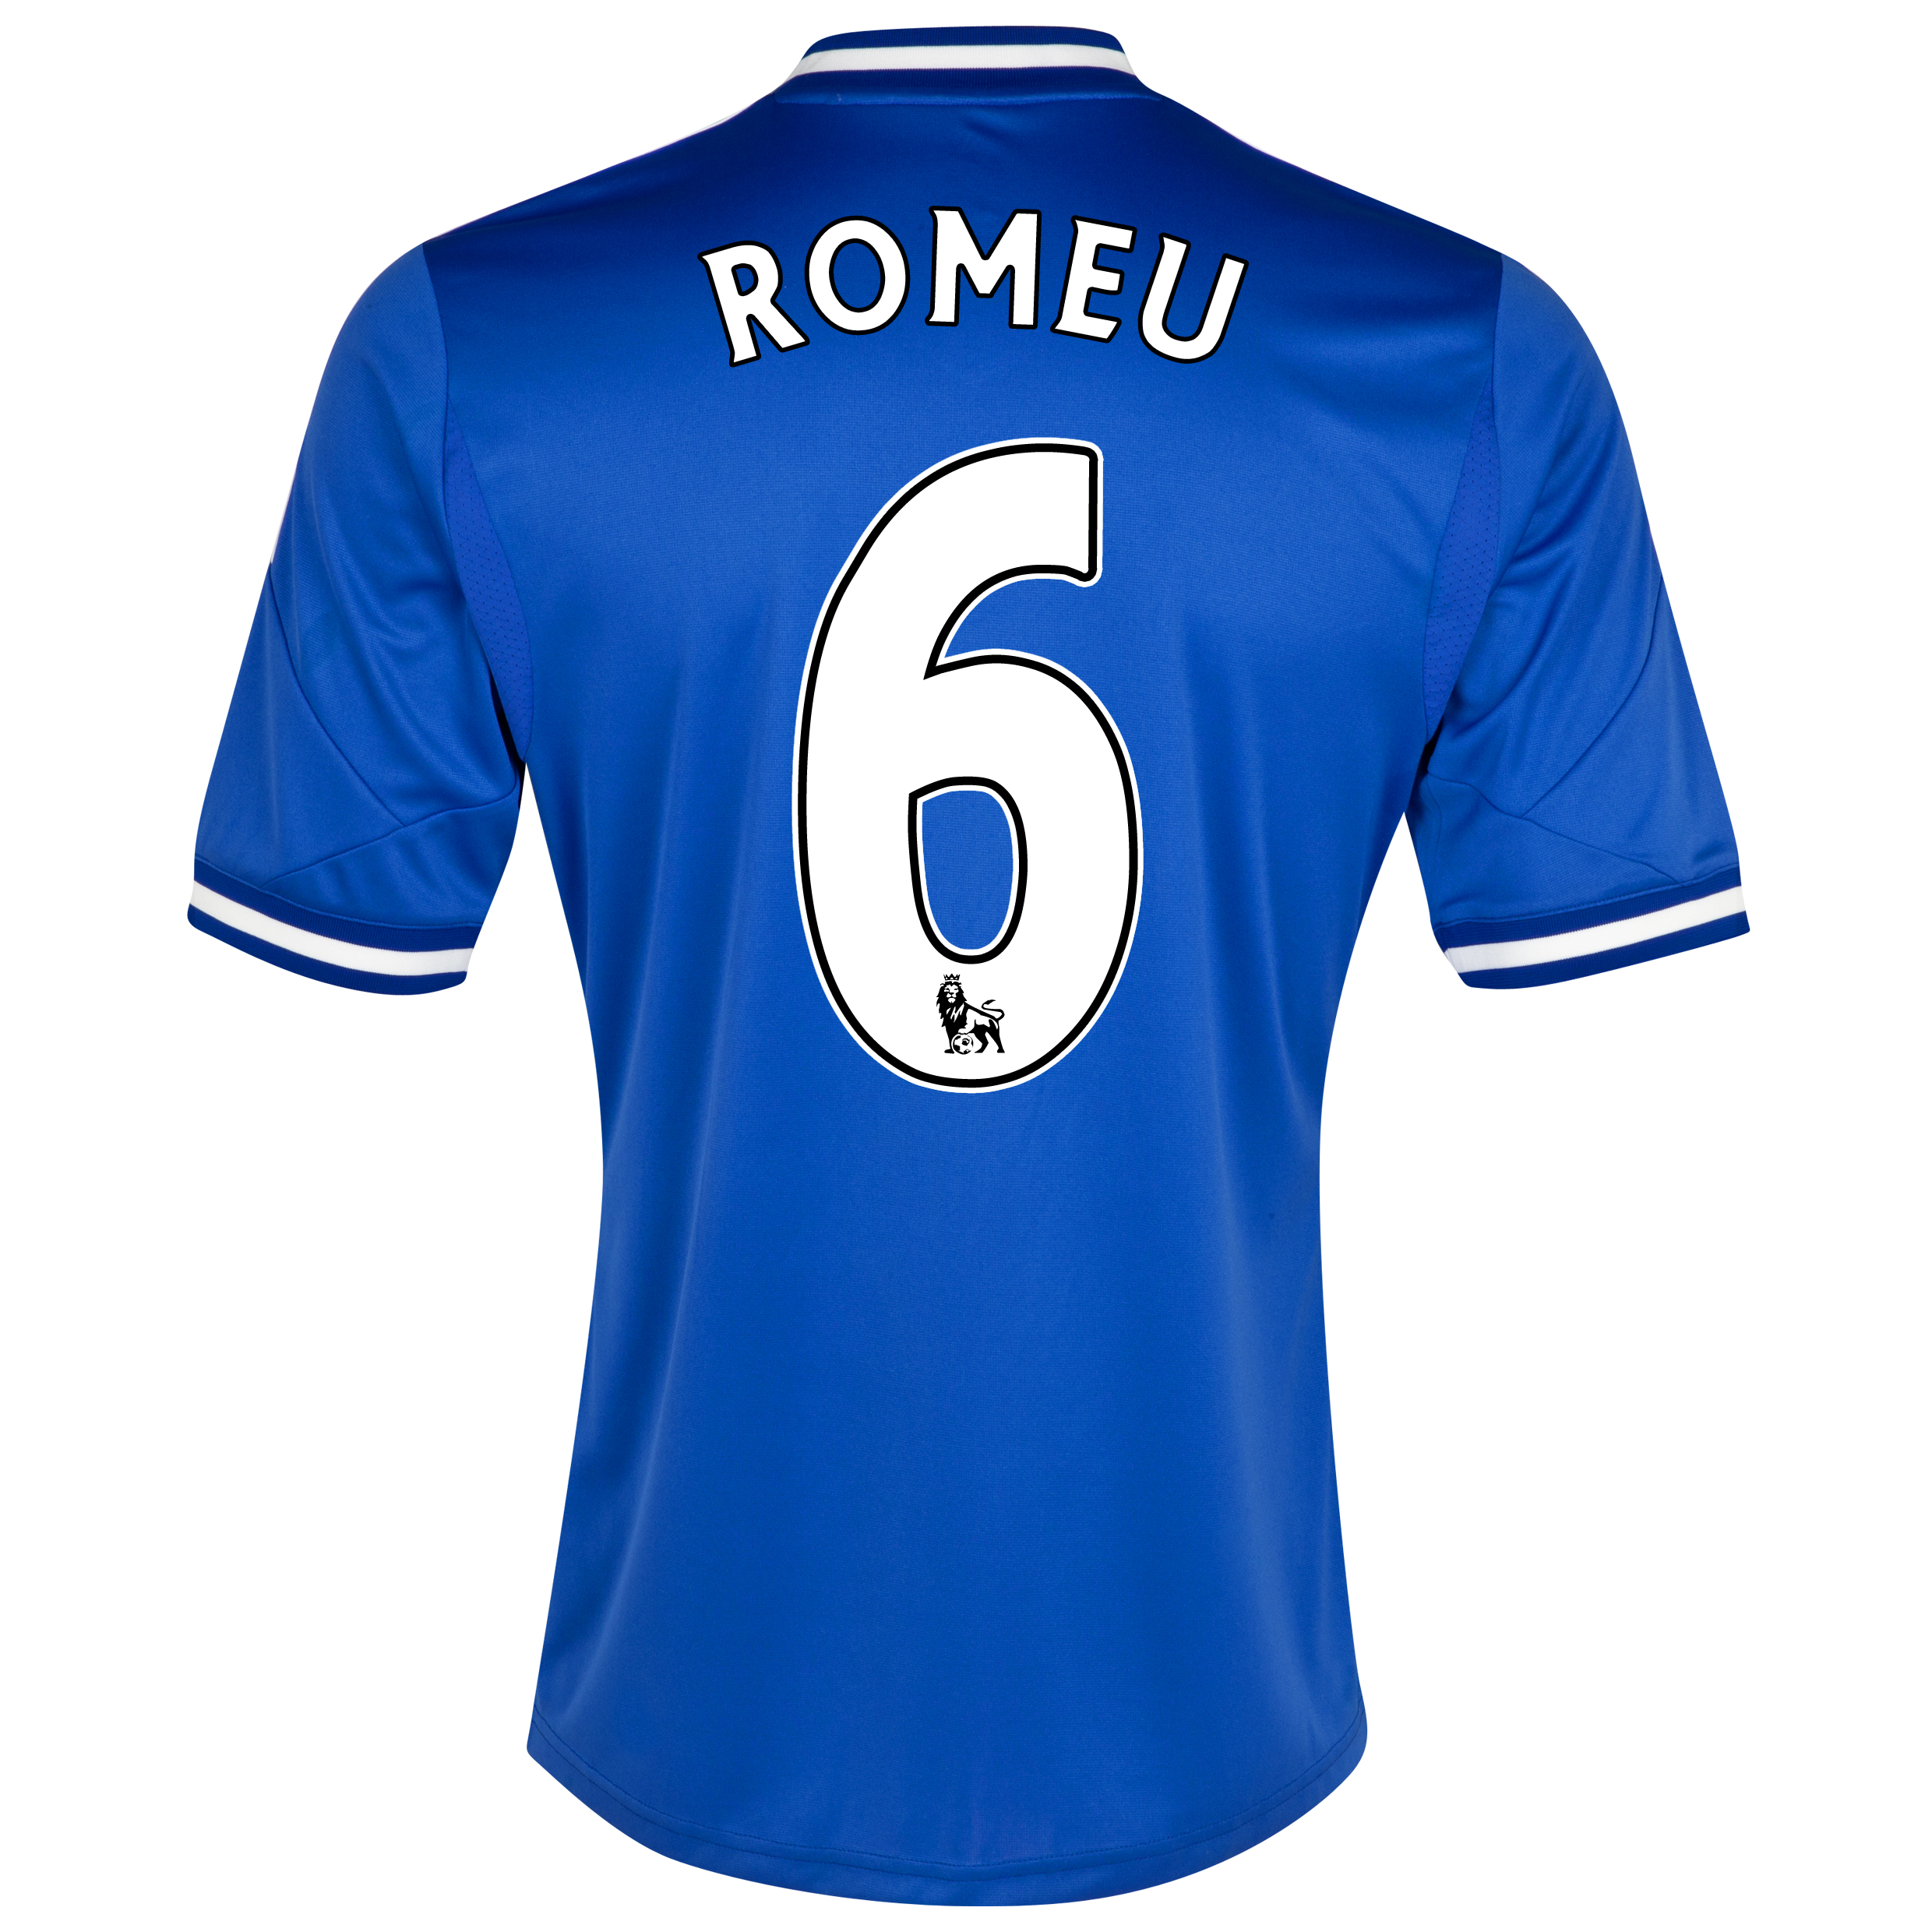 Chelsea Home Shirt 2013/14 - Outsize with Romeu 6 printing